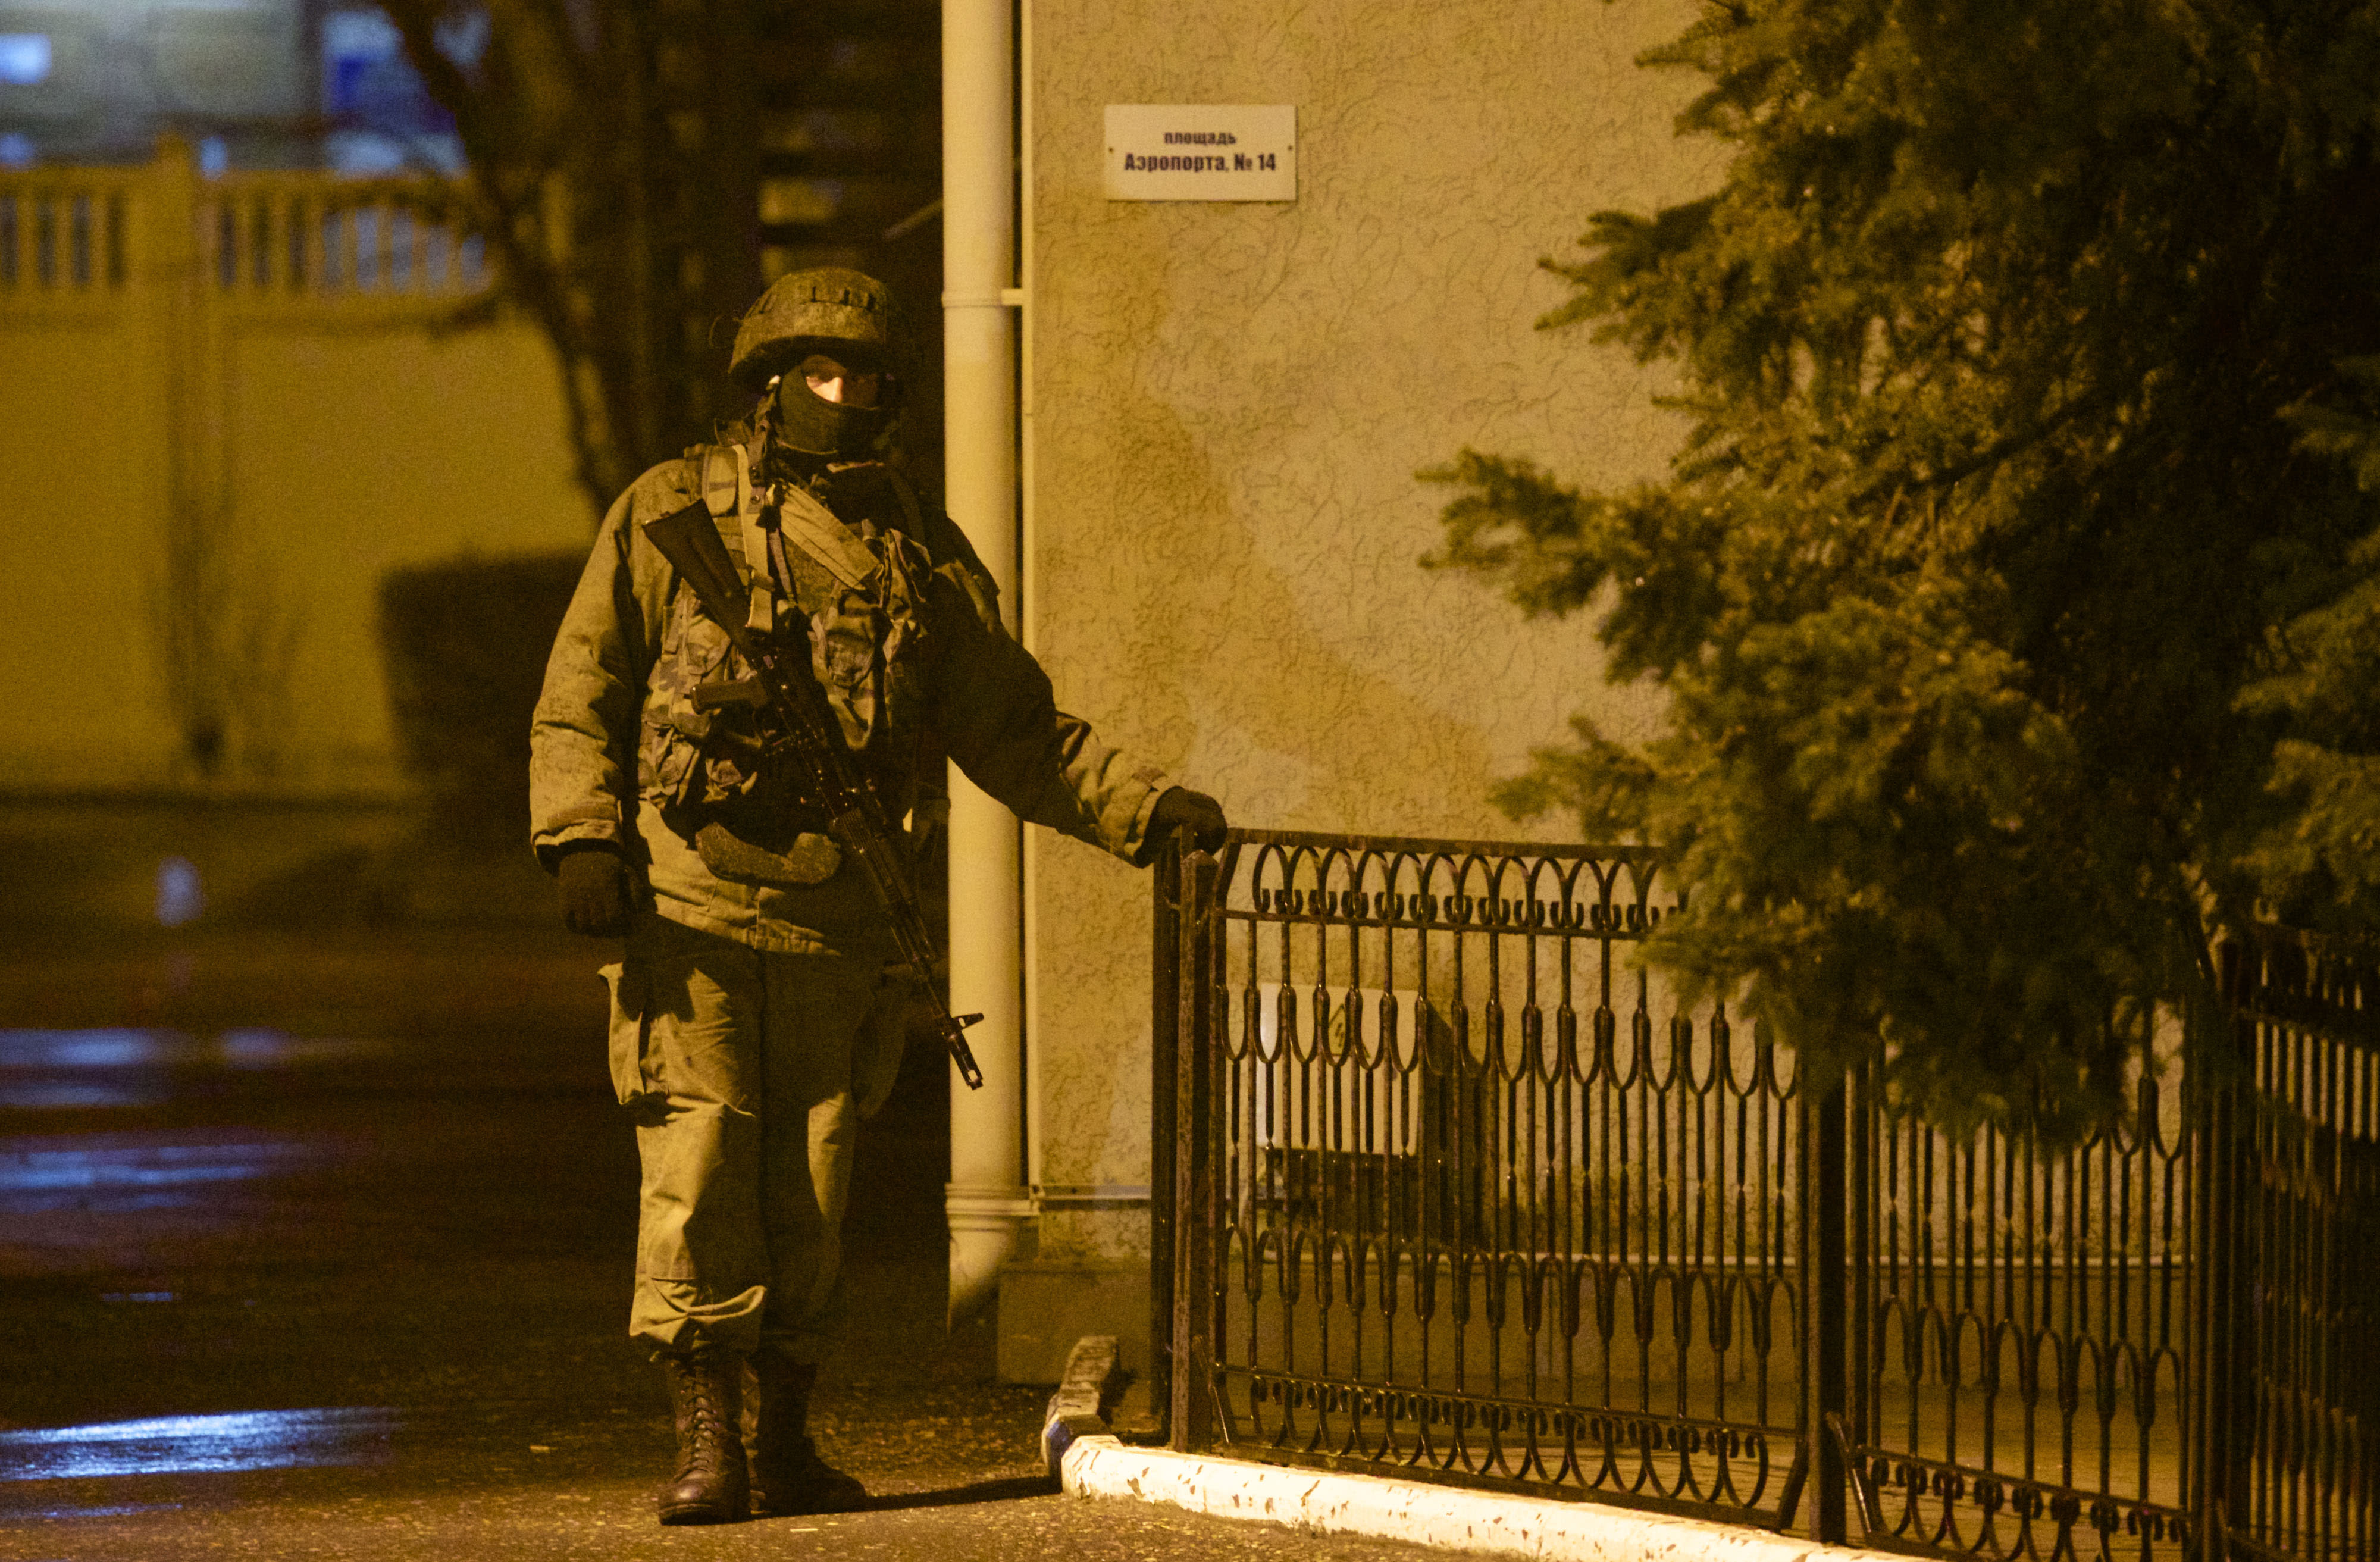 An unidentified armed man guards a building at the airport in Simferopol, Ukraine, Friday, Feb. 28, 2014. Dozens of armed men in military uniforms without markings patroled the airport in the capital of Ukraine's strategic Crimea region. (AP Photo/Ivan Sekretarev)